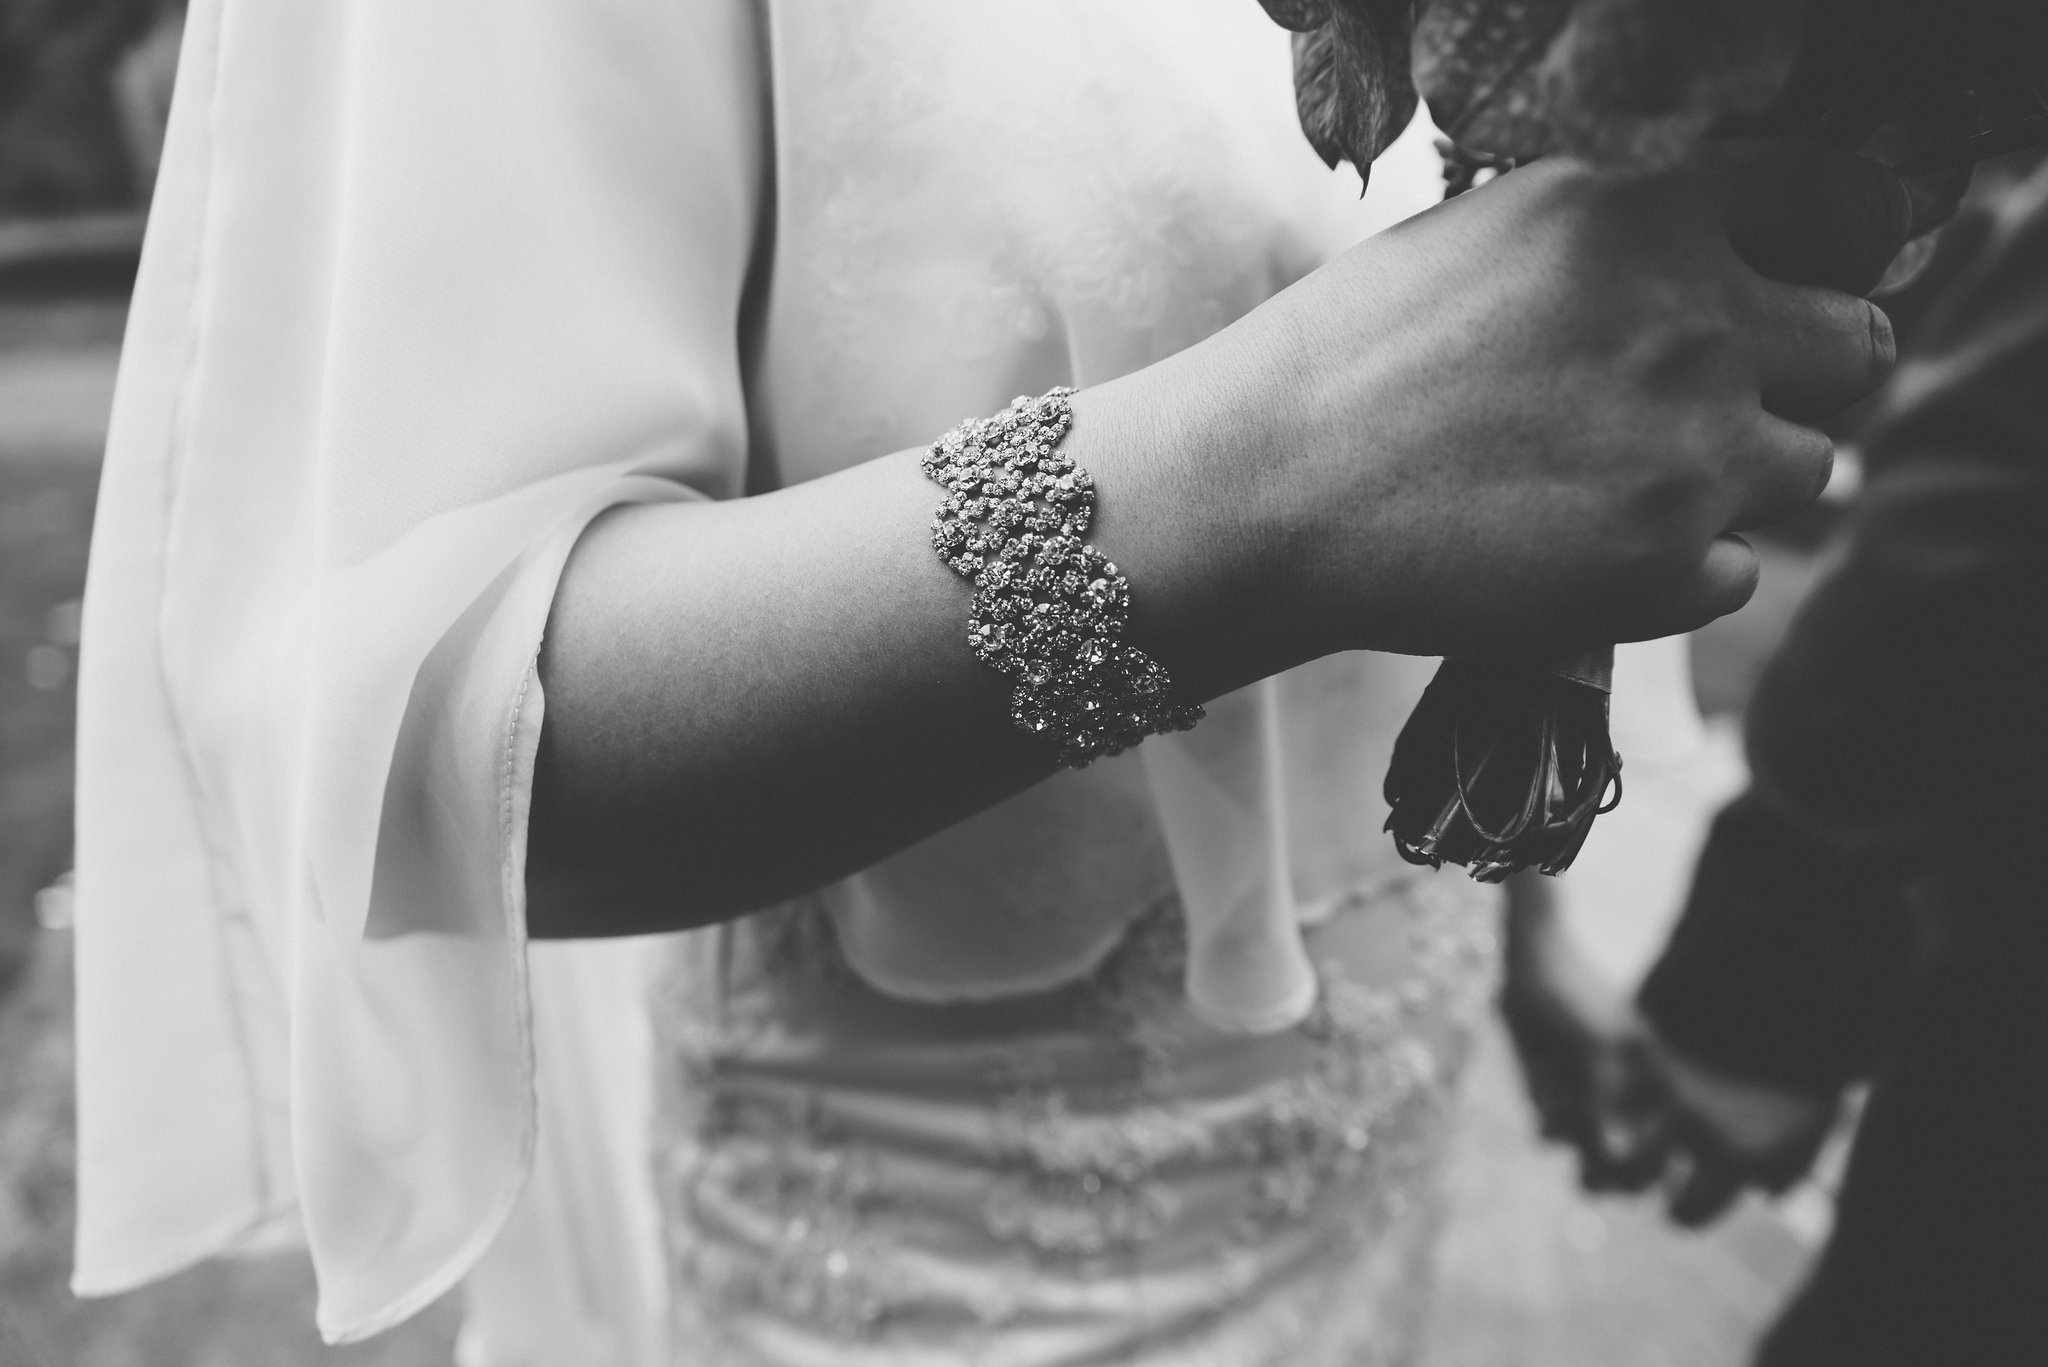 The bride is wearing an elegant bracelet.  The black and white treatment really shows off the detail of the jewellery.